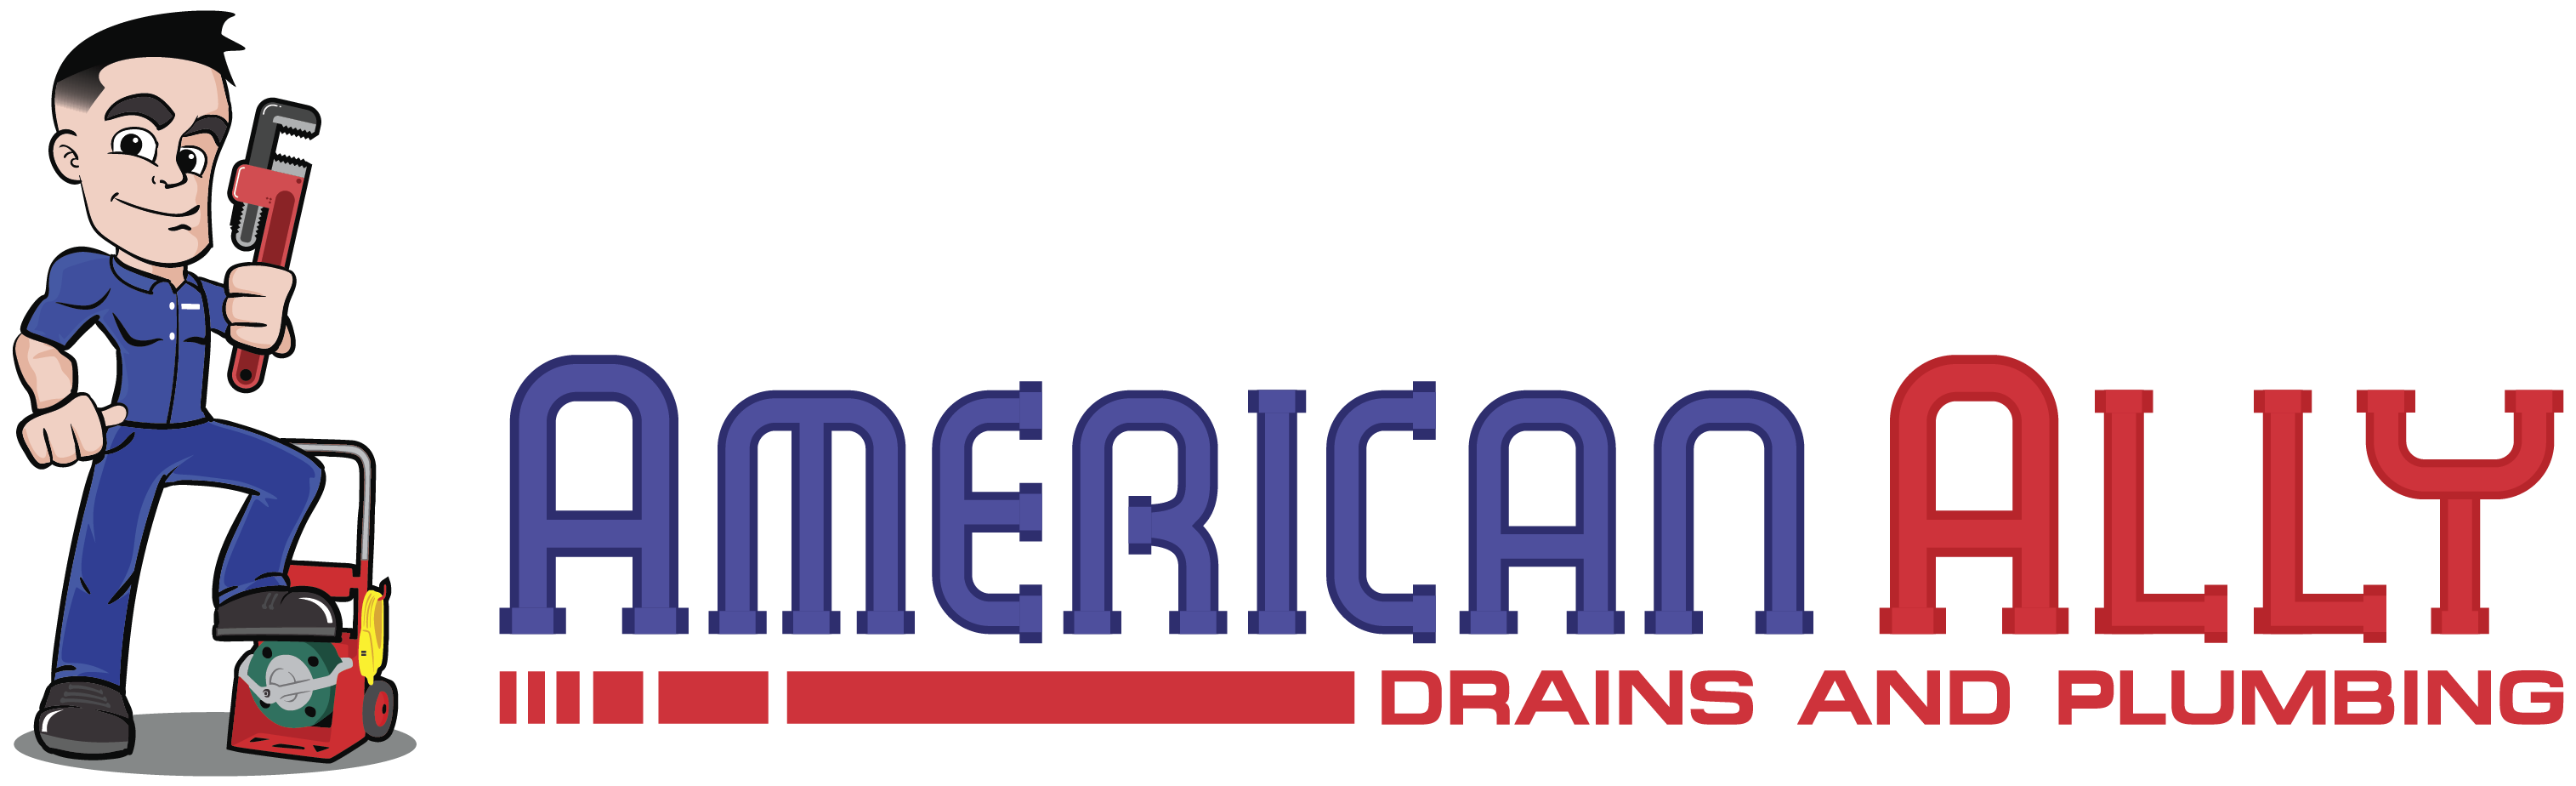 American Ally Drains & Plumbing Offers Fast, Reliable, And Efficient Plumber and Drain Cleaning Solutions